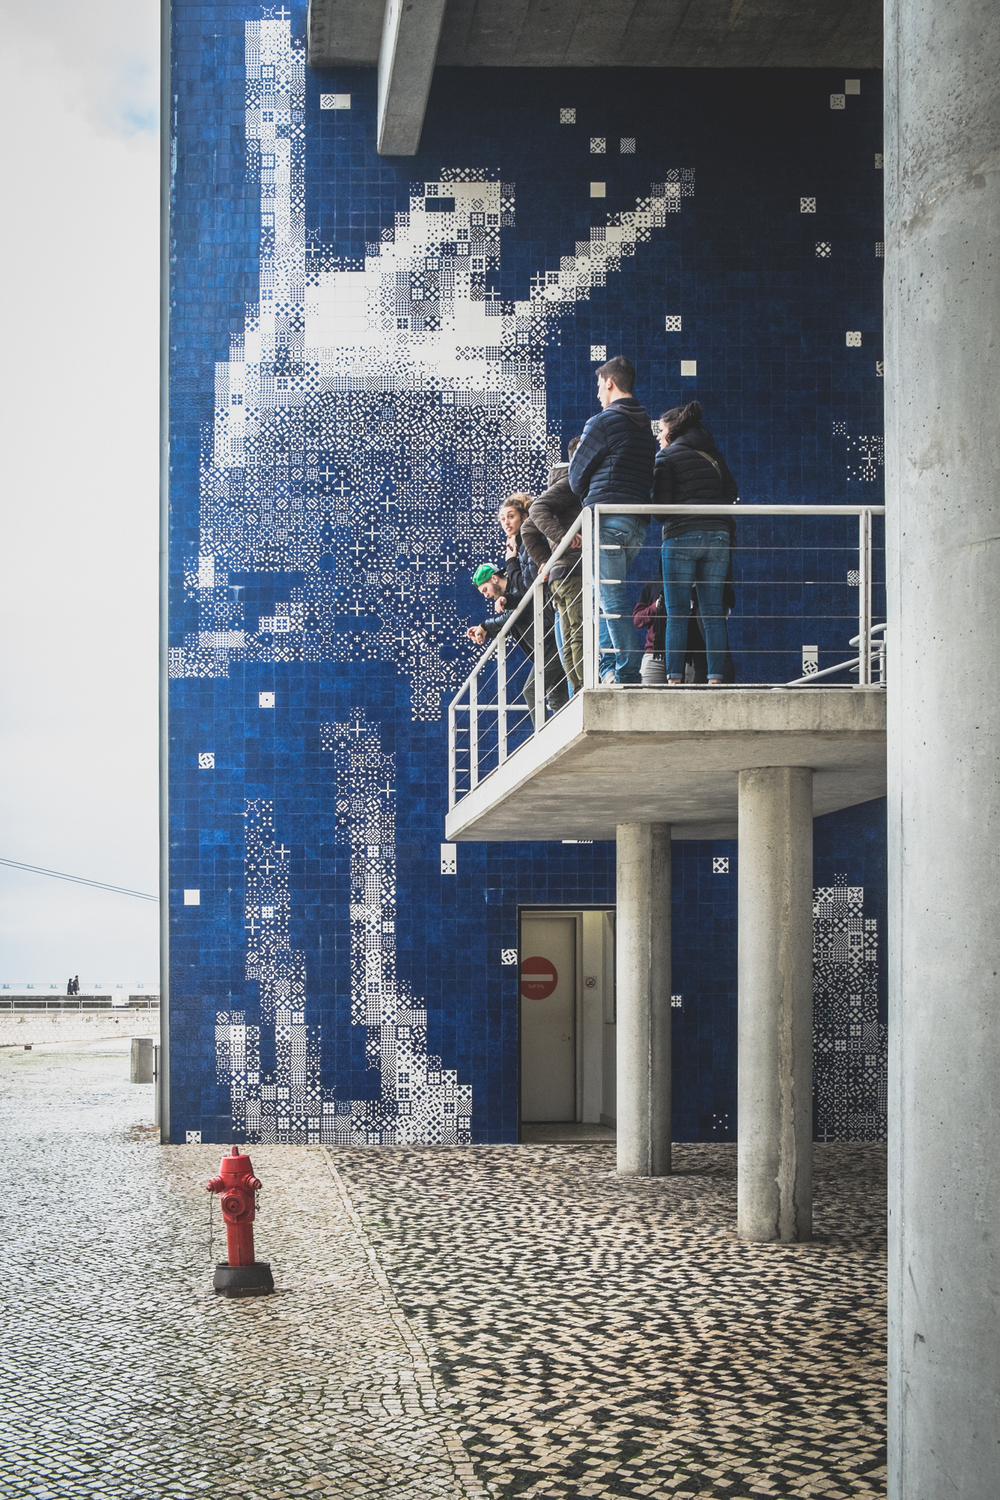 This is not a Christmas tree but it does help to build up the festive mood. The Portuguese blue tile is well represented as a giant snow man.